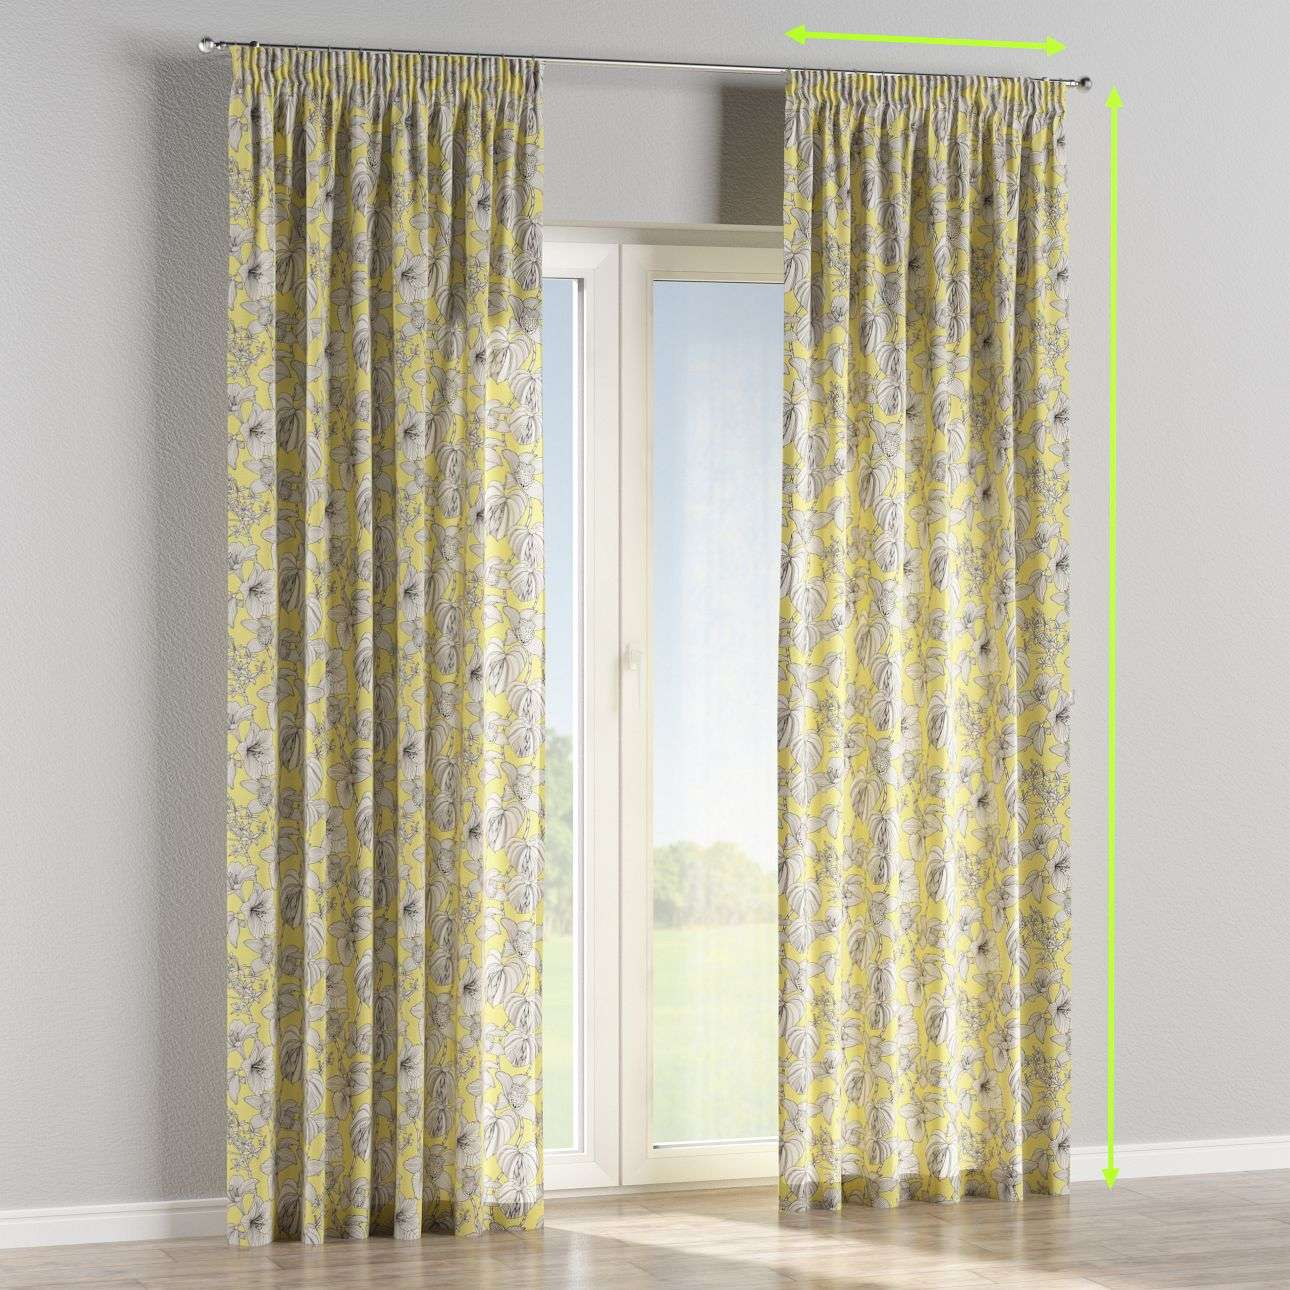 Pencil pleat lined curtains in collection Brooklyn, fabric: 137-78